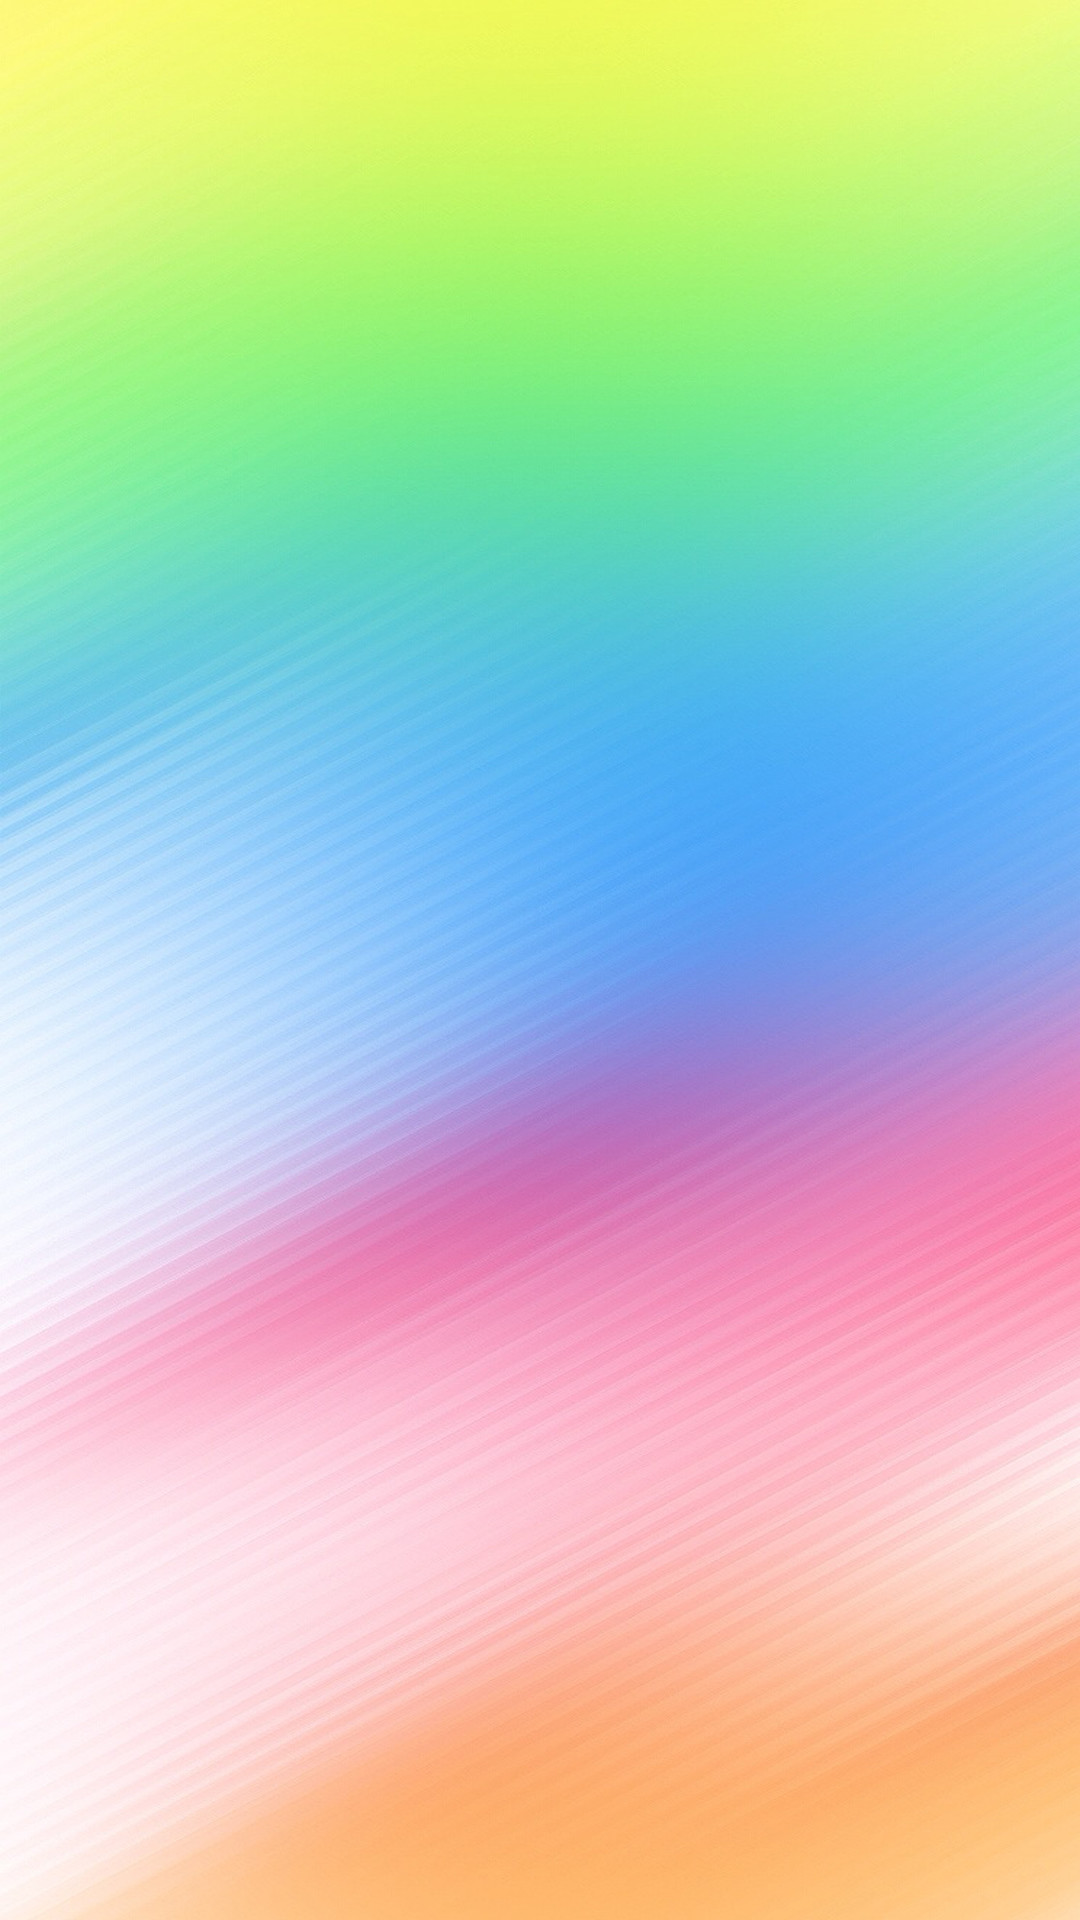 Old iOS 8 iPhone Wallpapers (71+ images)